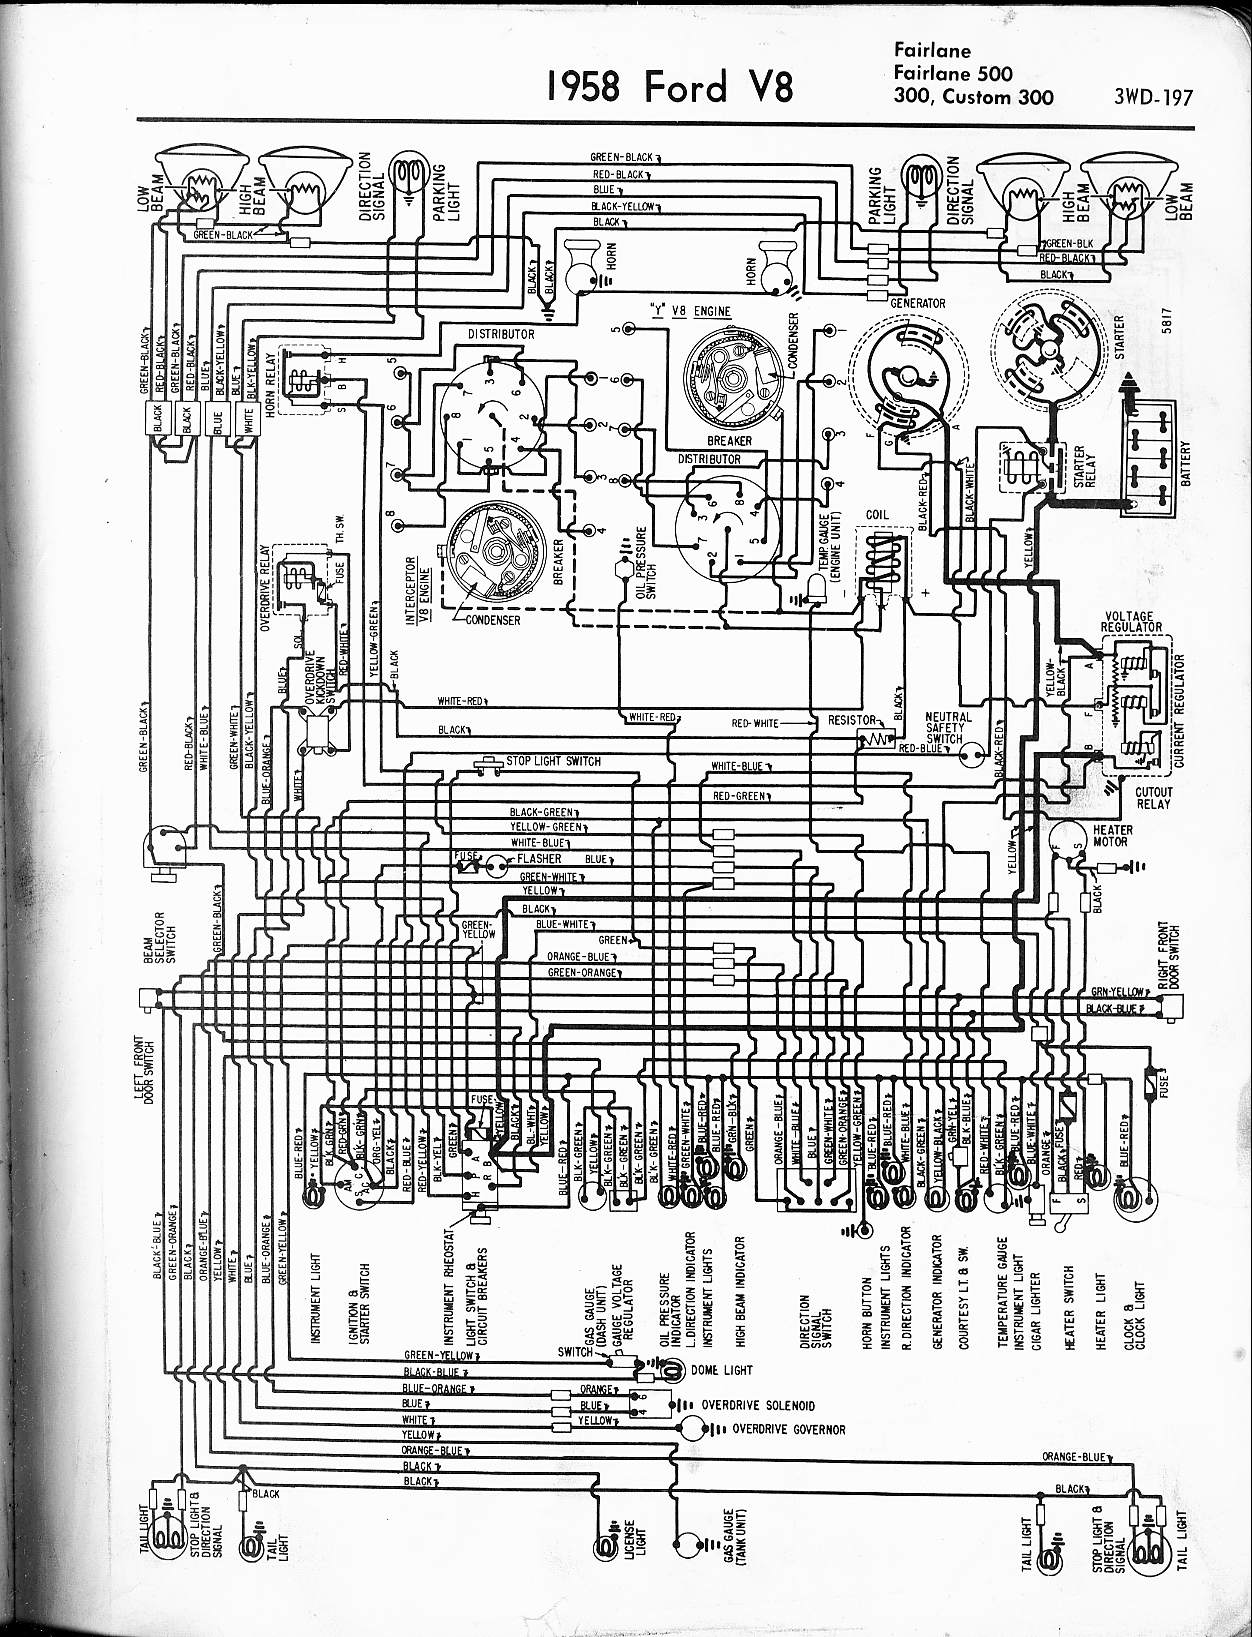 1966 Ranchero Fuse Box Data Wiring Diagram 1964 Ford Futura El Camino